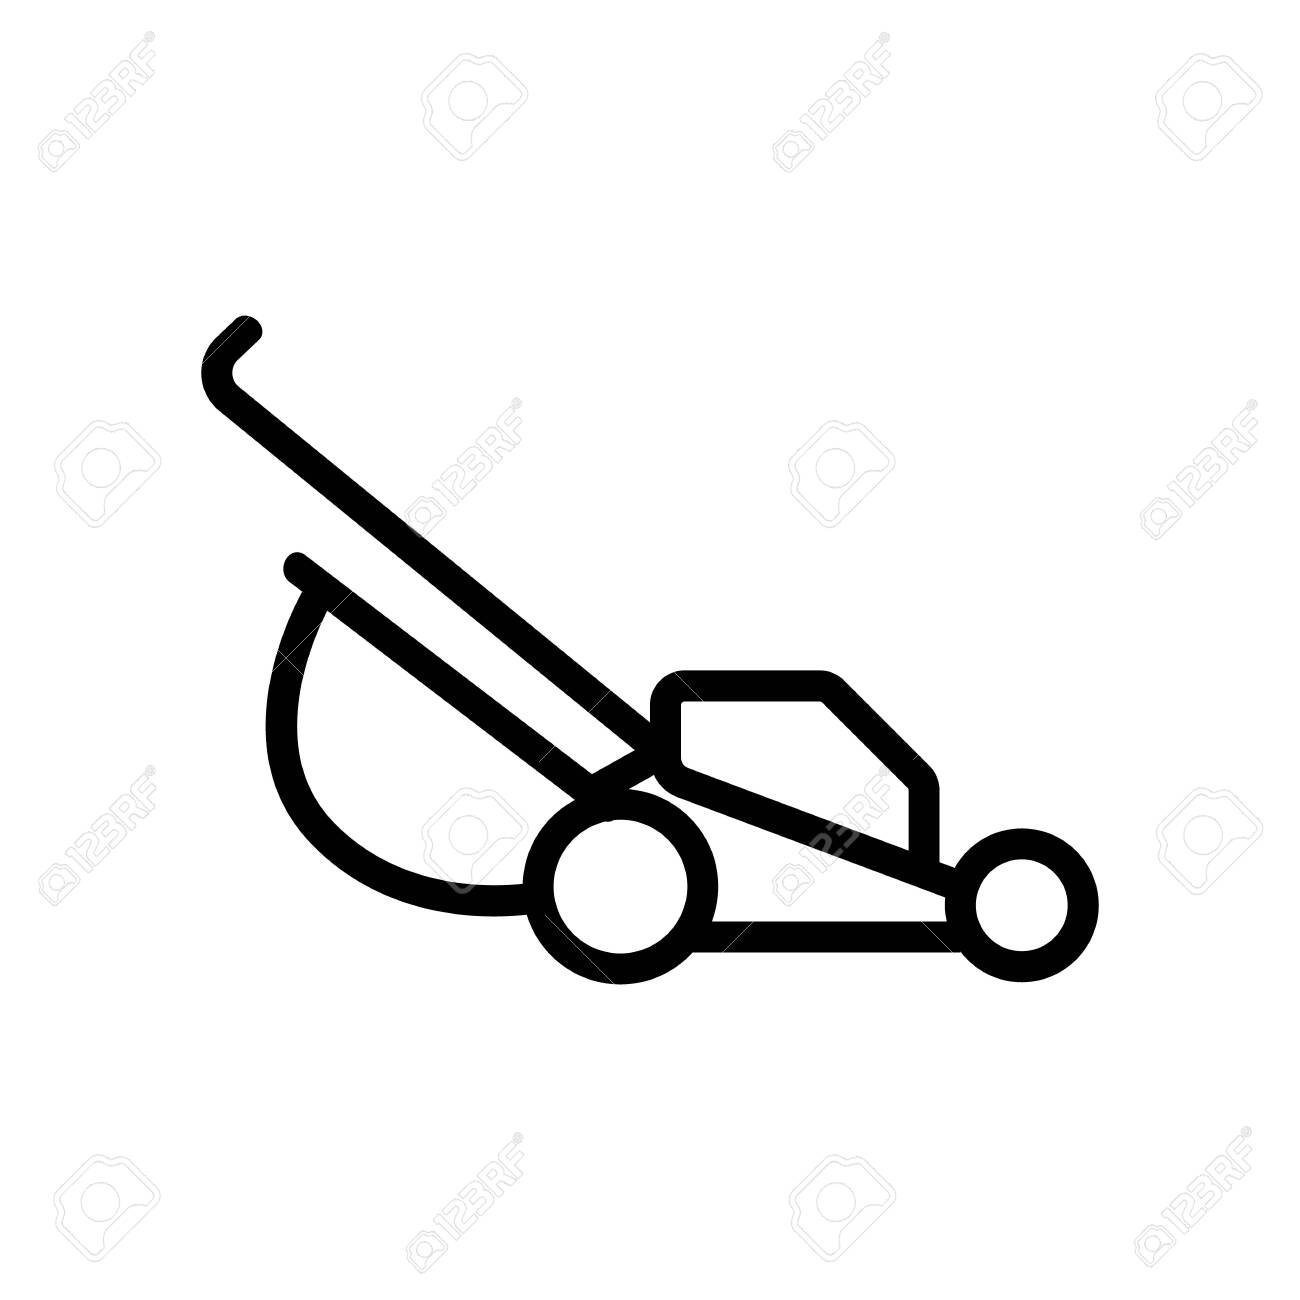 Manual Lawn Mower Icon Vector Manual Lawn Mower Sign Isolated Contour Symbol Illustration Royalty Free Cliparts Vectors And Stock Illustration Image 146706757